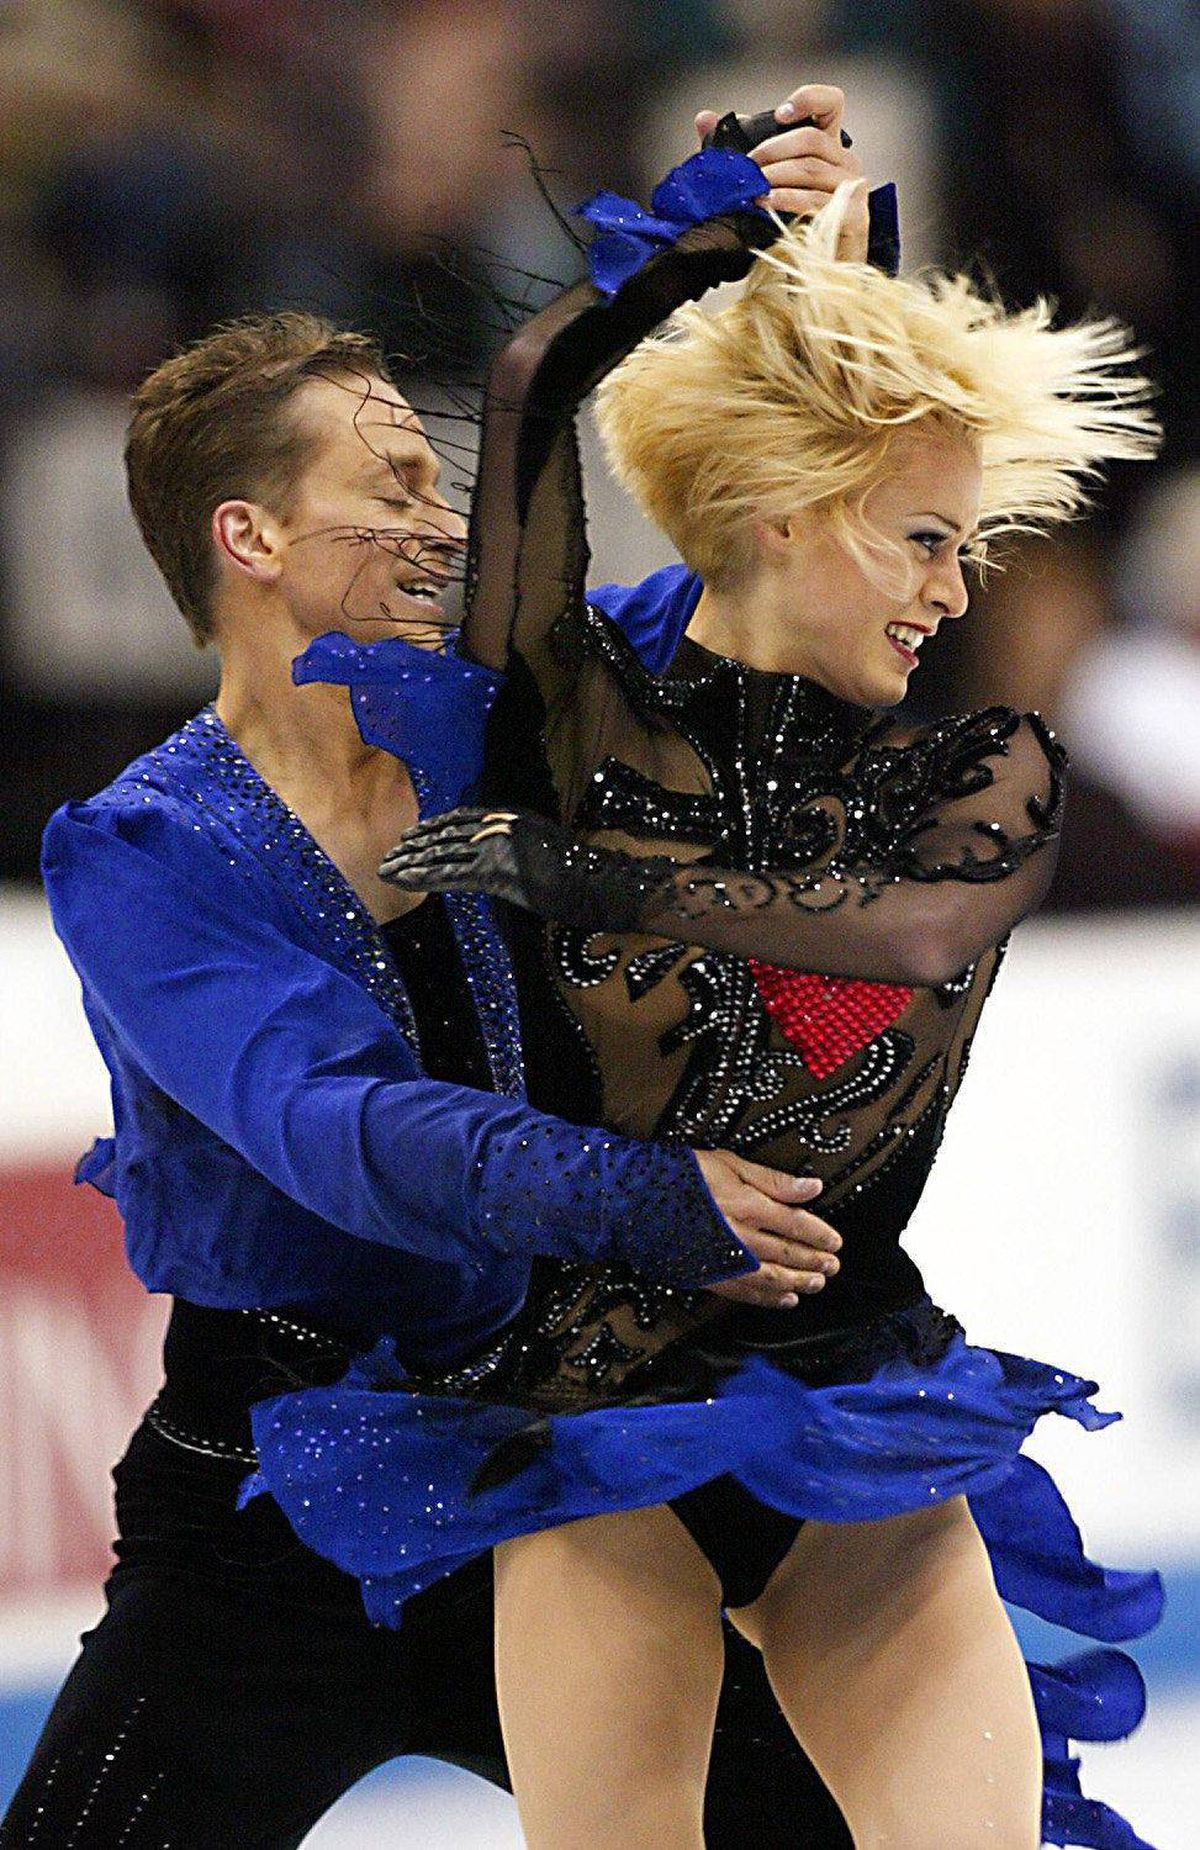 Shae-Lynn Bourne and Victor Kraatz of Canada skate in the Ice Dancing Free Dance at the 2003 World Figure Skating Championships 28 March, 2003 in Washington, DC. Bourne and Kraatz won the event.